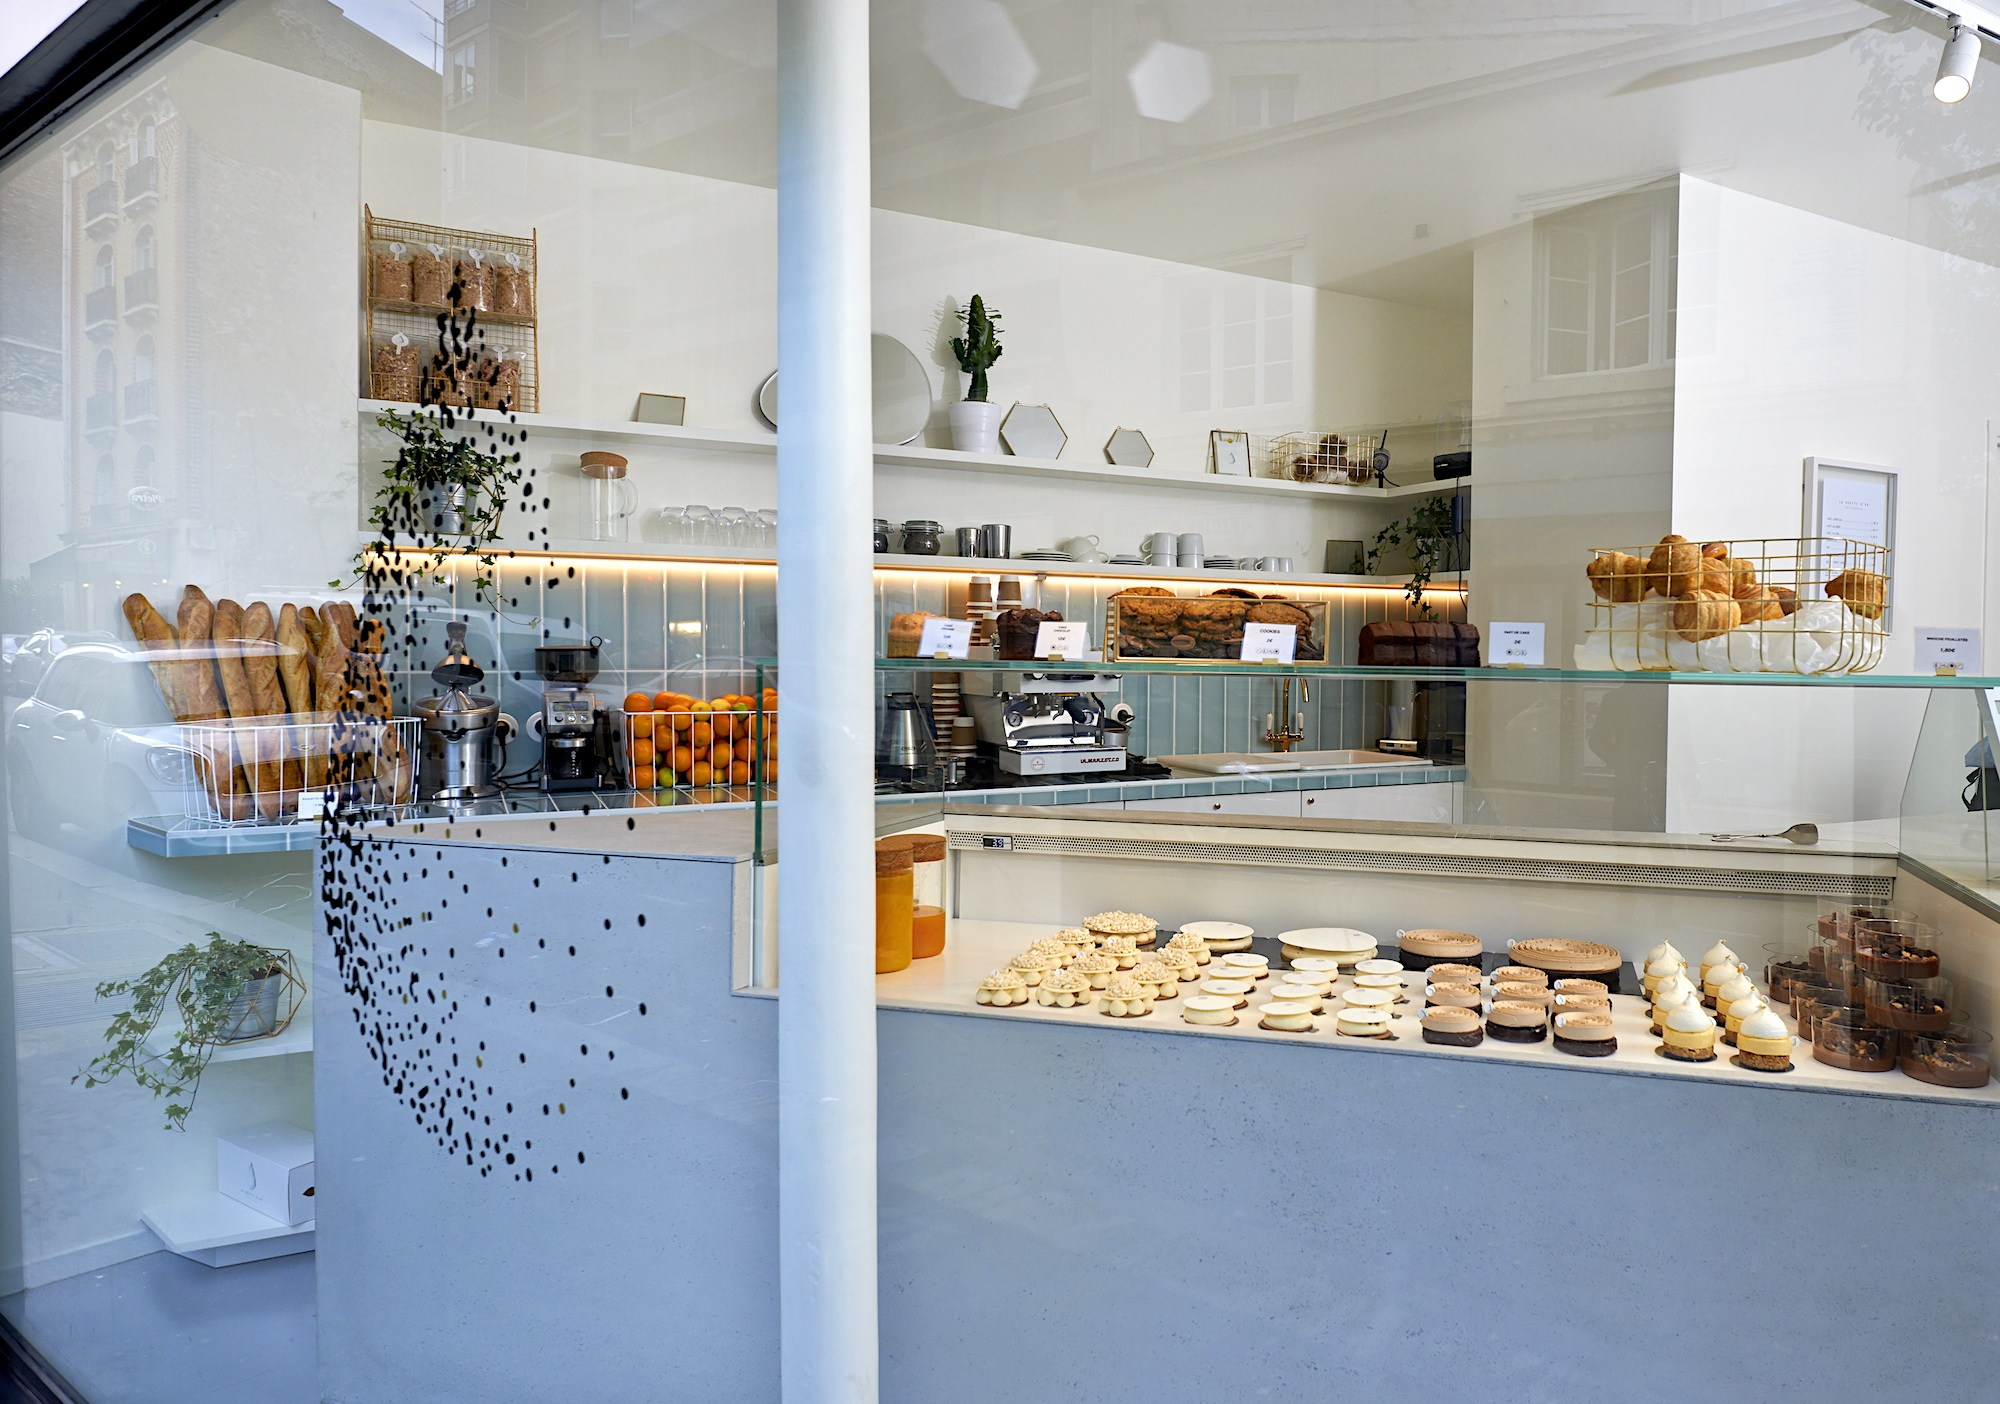 One of the best bakeries in Paris for cakes, pastries and bread is La Goutte d'Or patisserie in the 18th arrondissement.